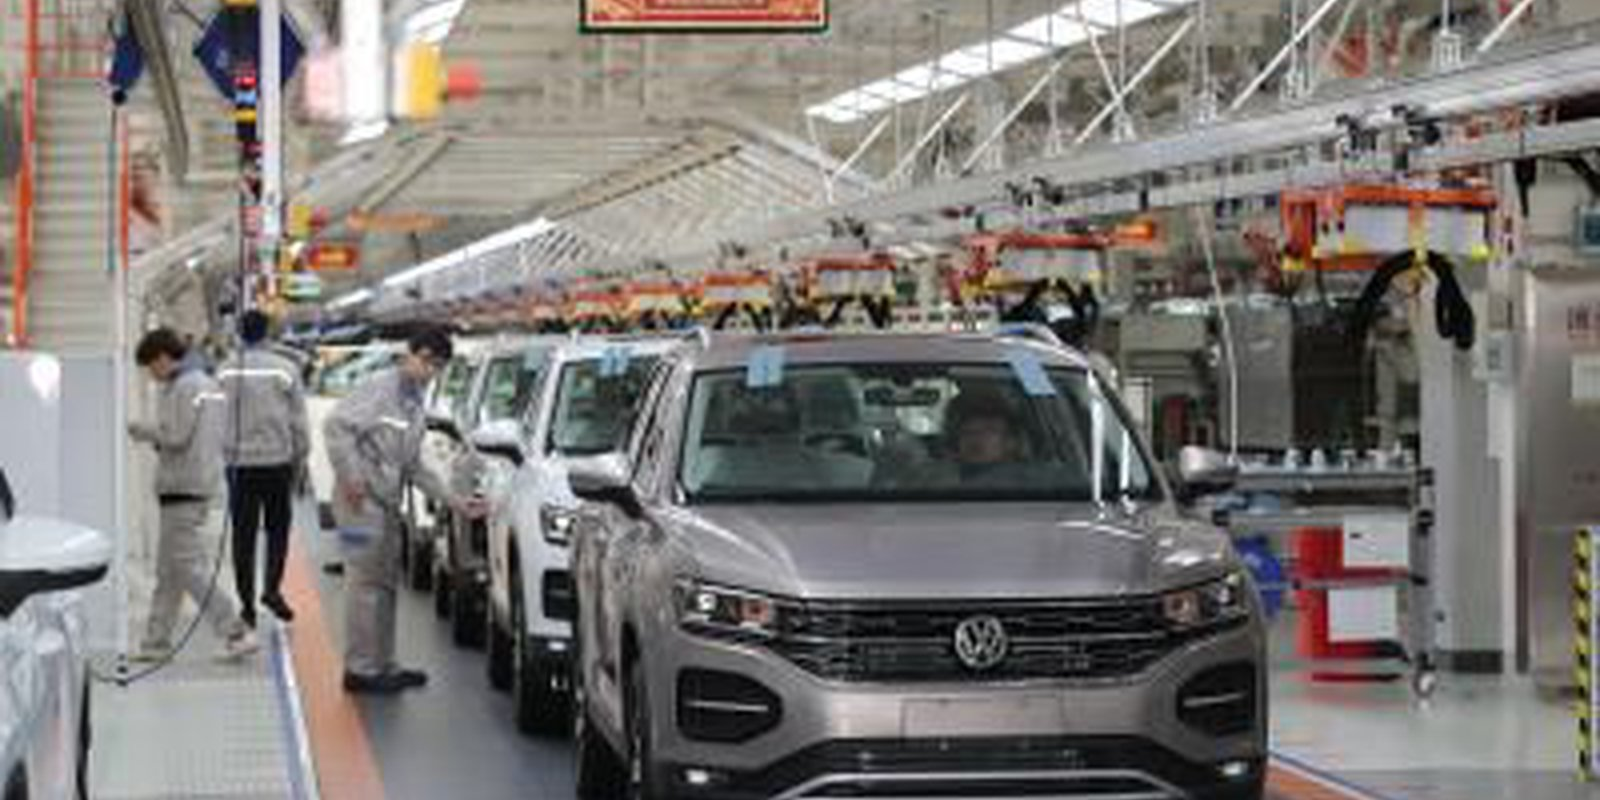 Image — Employees work on the assembly line of Volkswagen Tayron at a whole-vehicle manufacturing base of the Chinese-German joint venture FAW-Volkswagen Automotive Co Ltd on 5 December 2019 in Tianjin, China. Photo credit: Copyright © VCG/Contributor/Getty Image